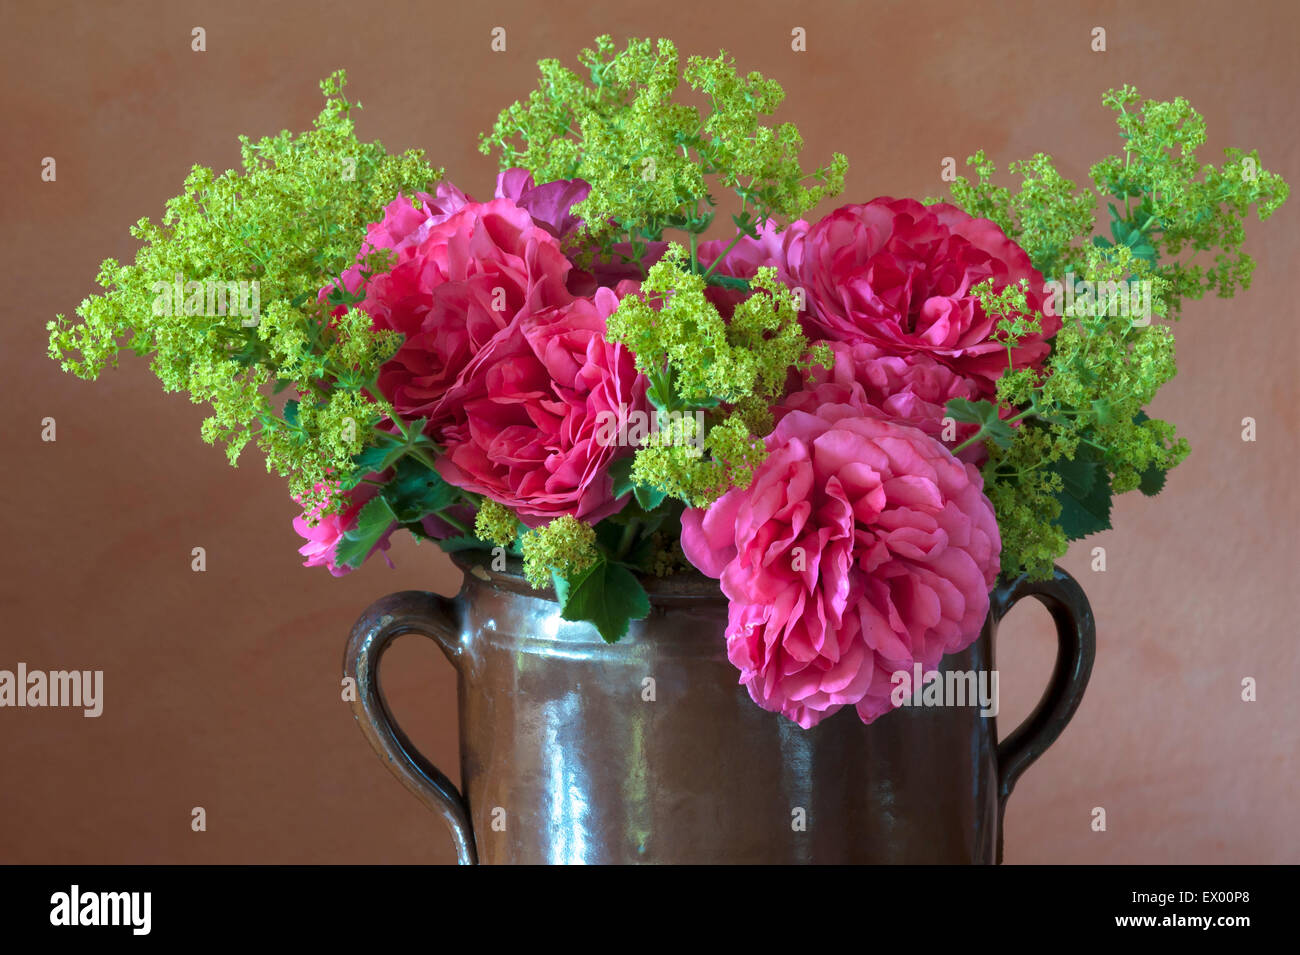 Bouquet in clay jug on table cariona rose rosa sp and ladys bouquet in clay jug on table cariona rose rosa sp and ladys mantle alchemilla sp izmirmasajfo Images